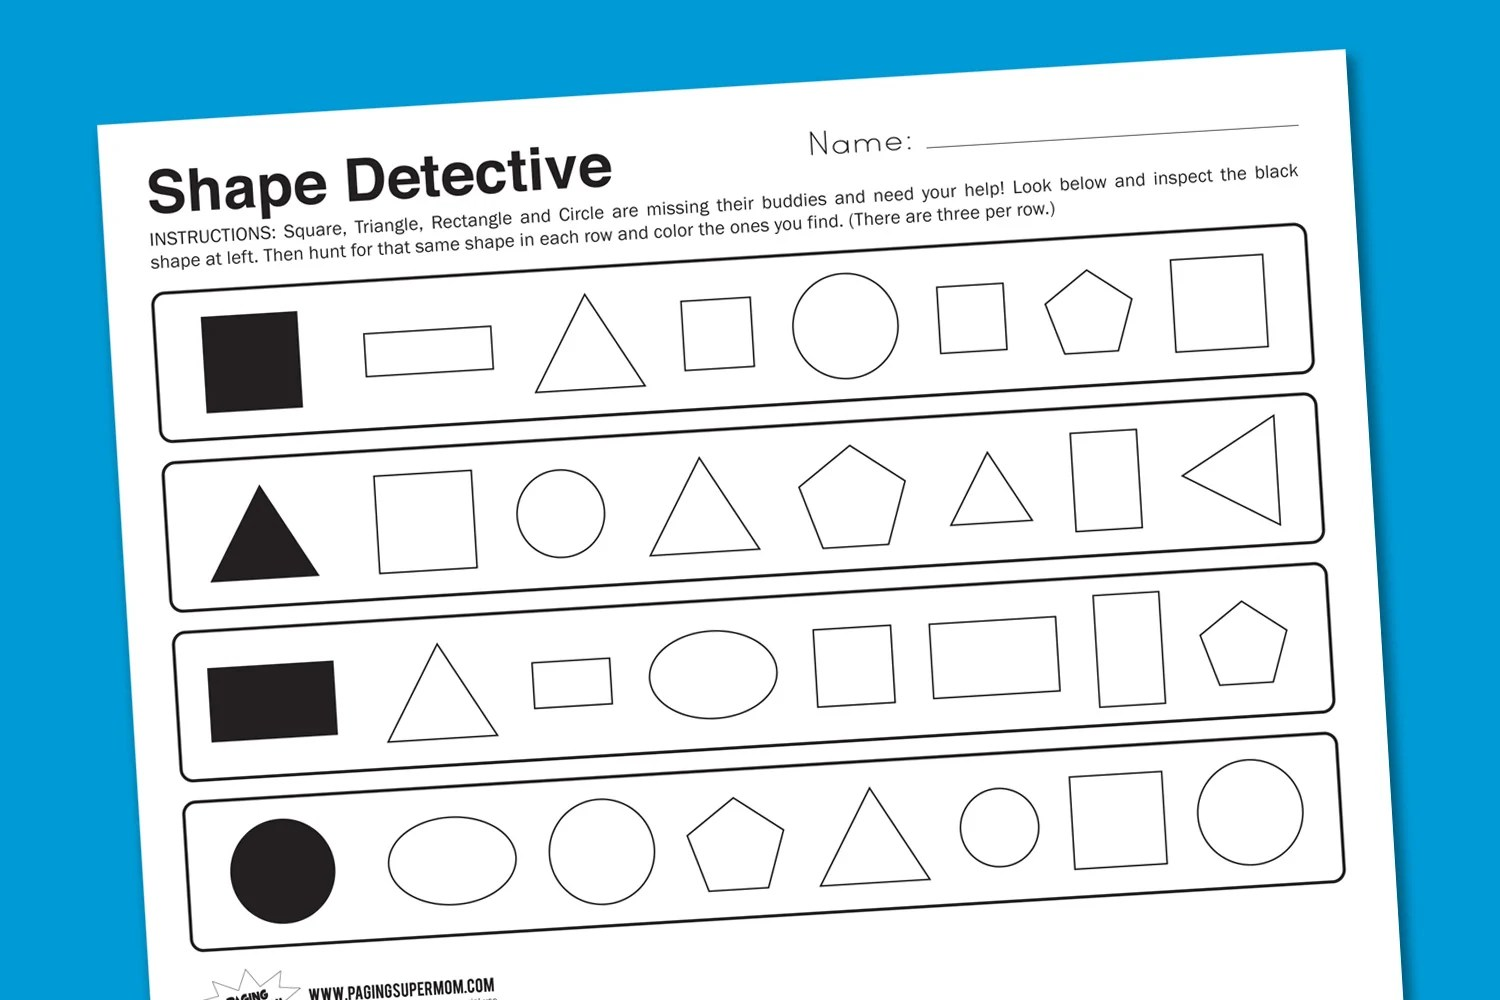 Worksheet Wednesday Shape Detective